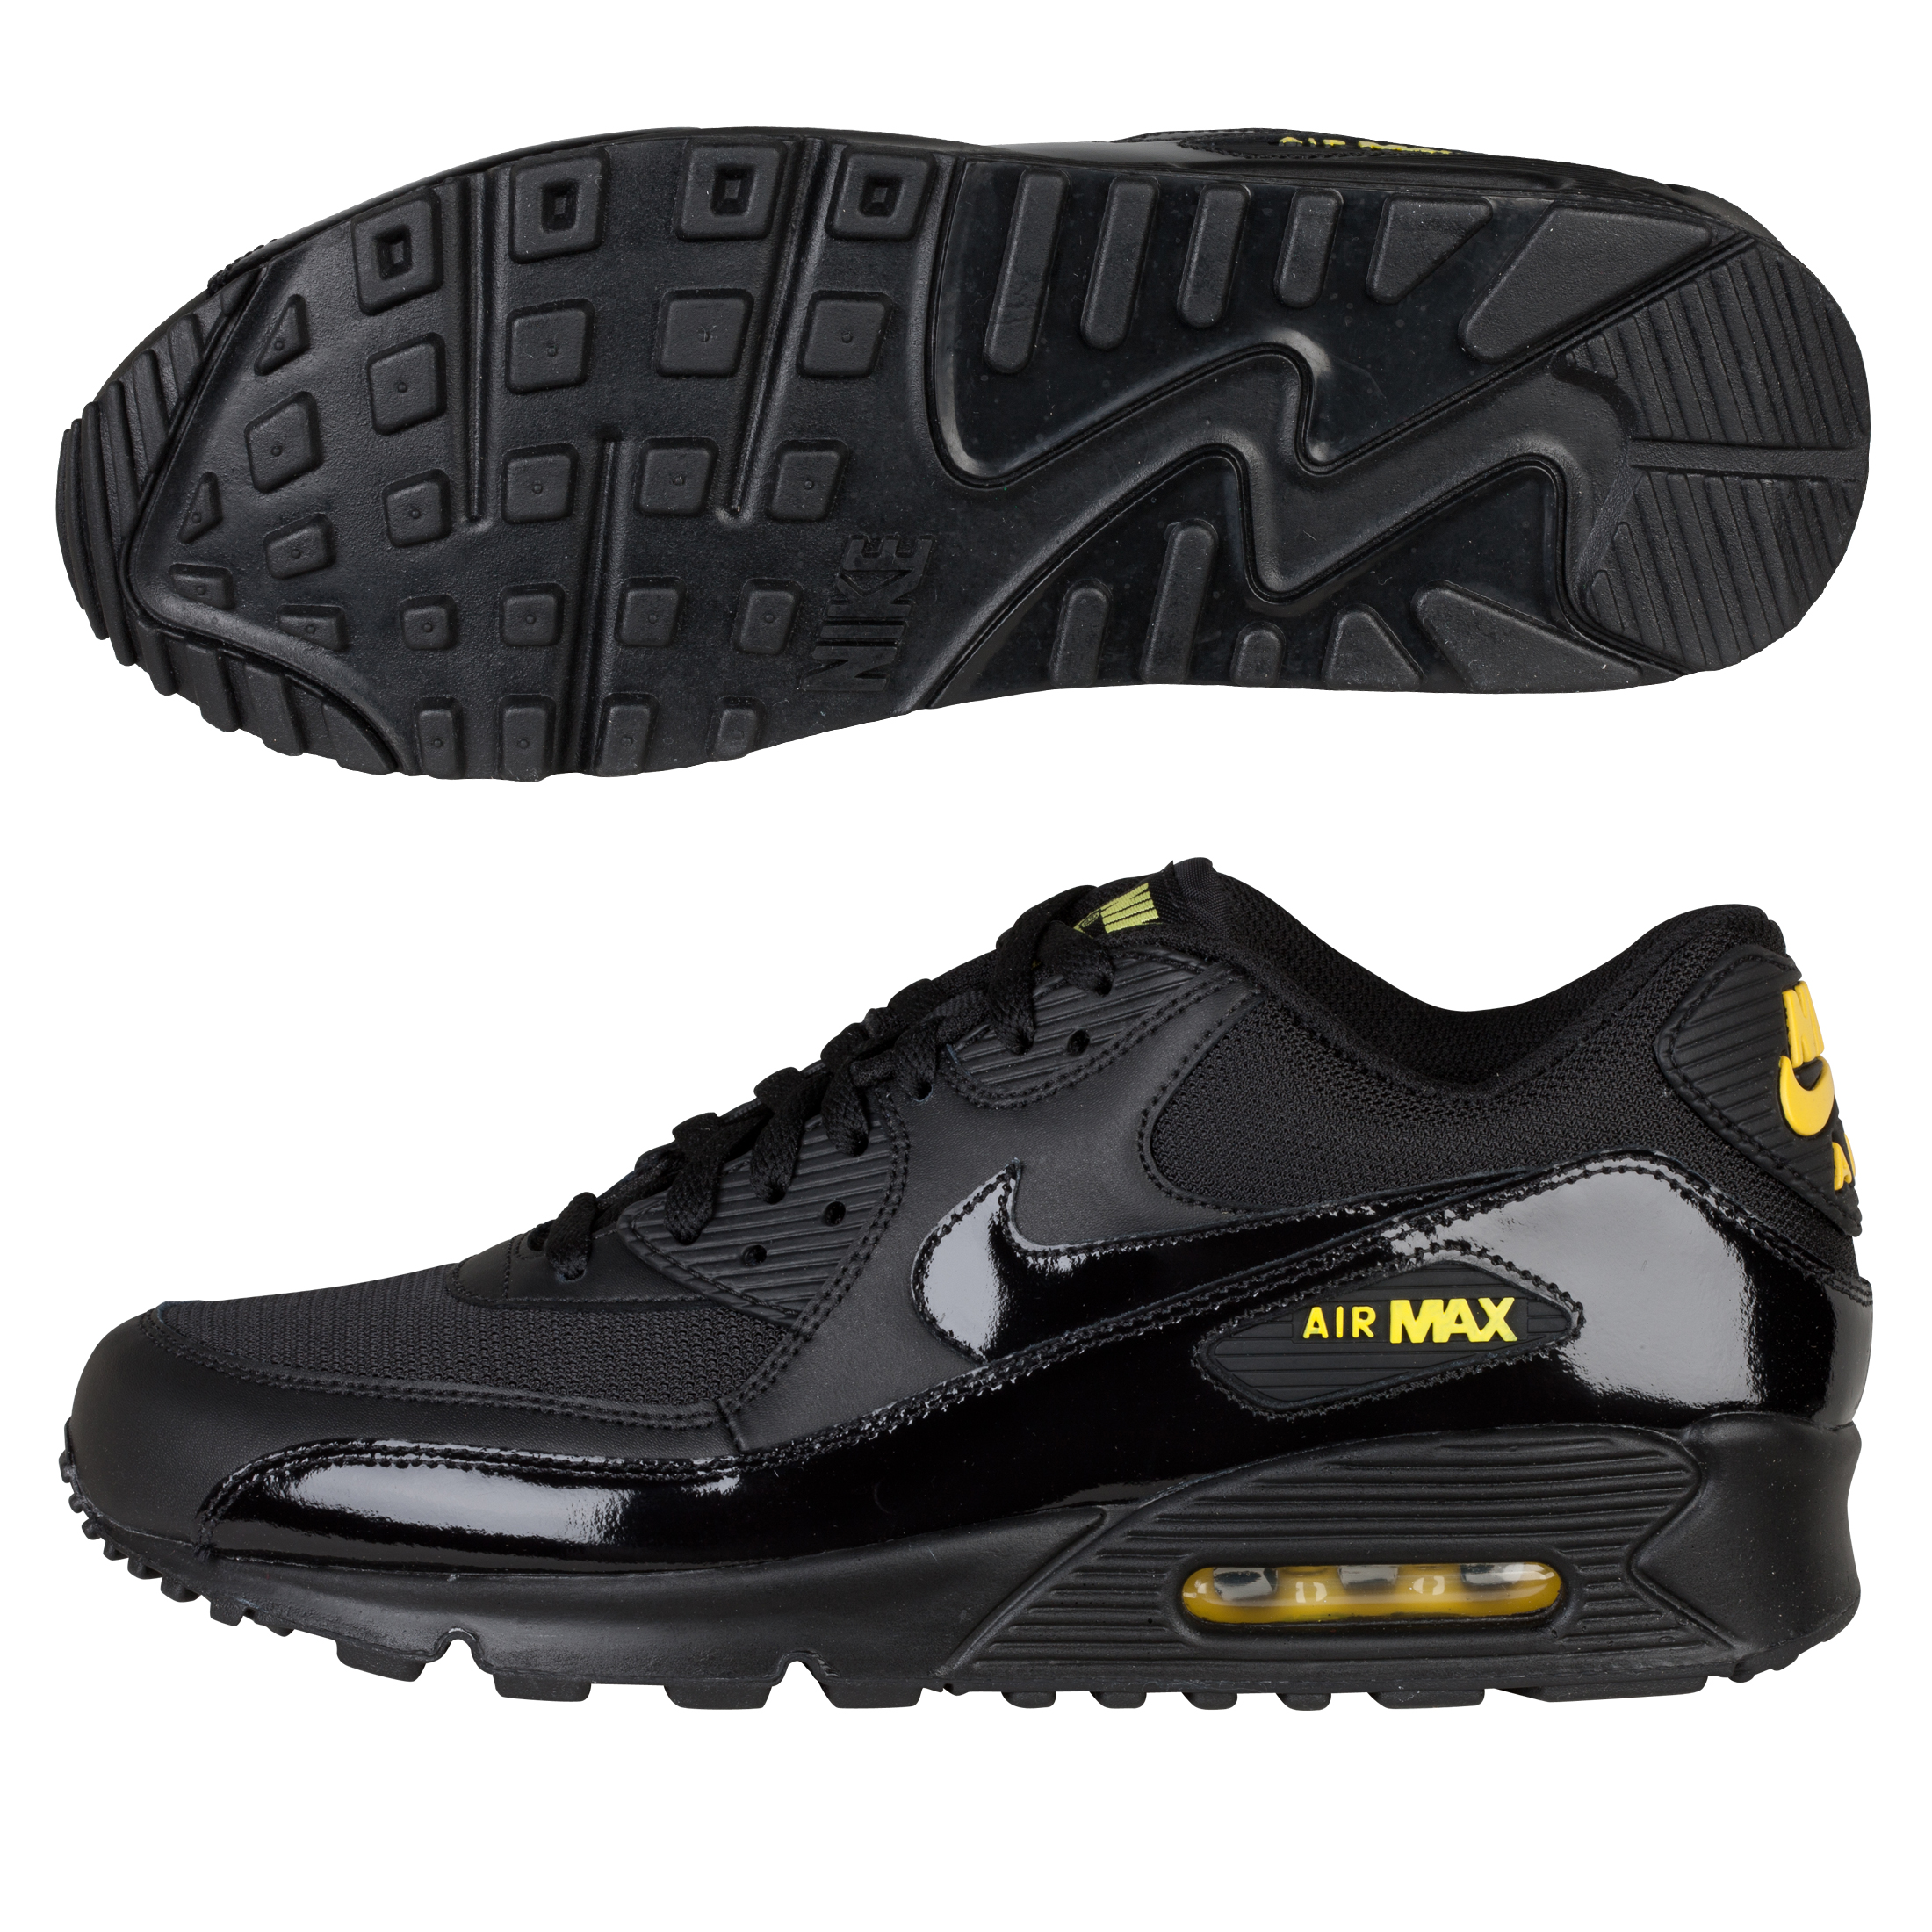 Nike Air Max 90 Trainers - Black/Black-Golden Sash